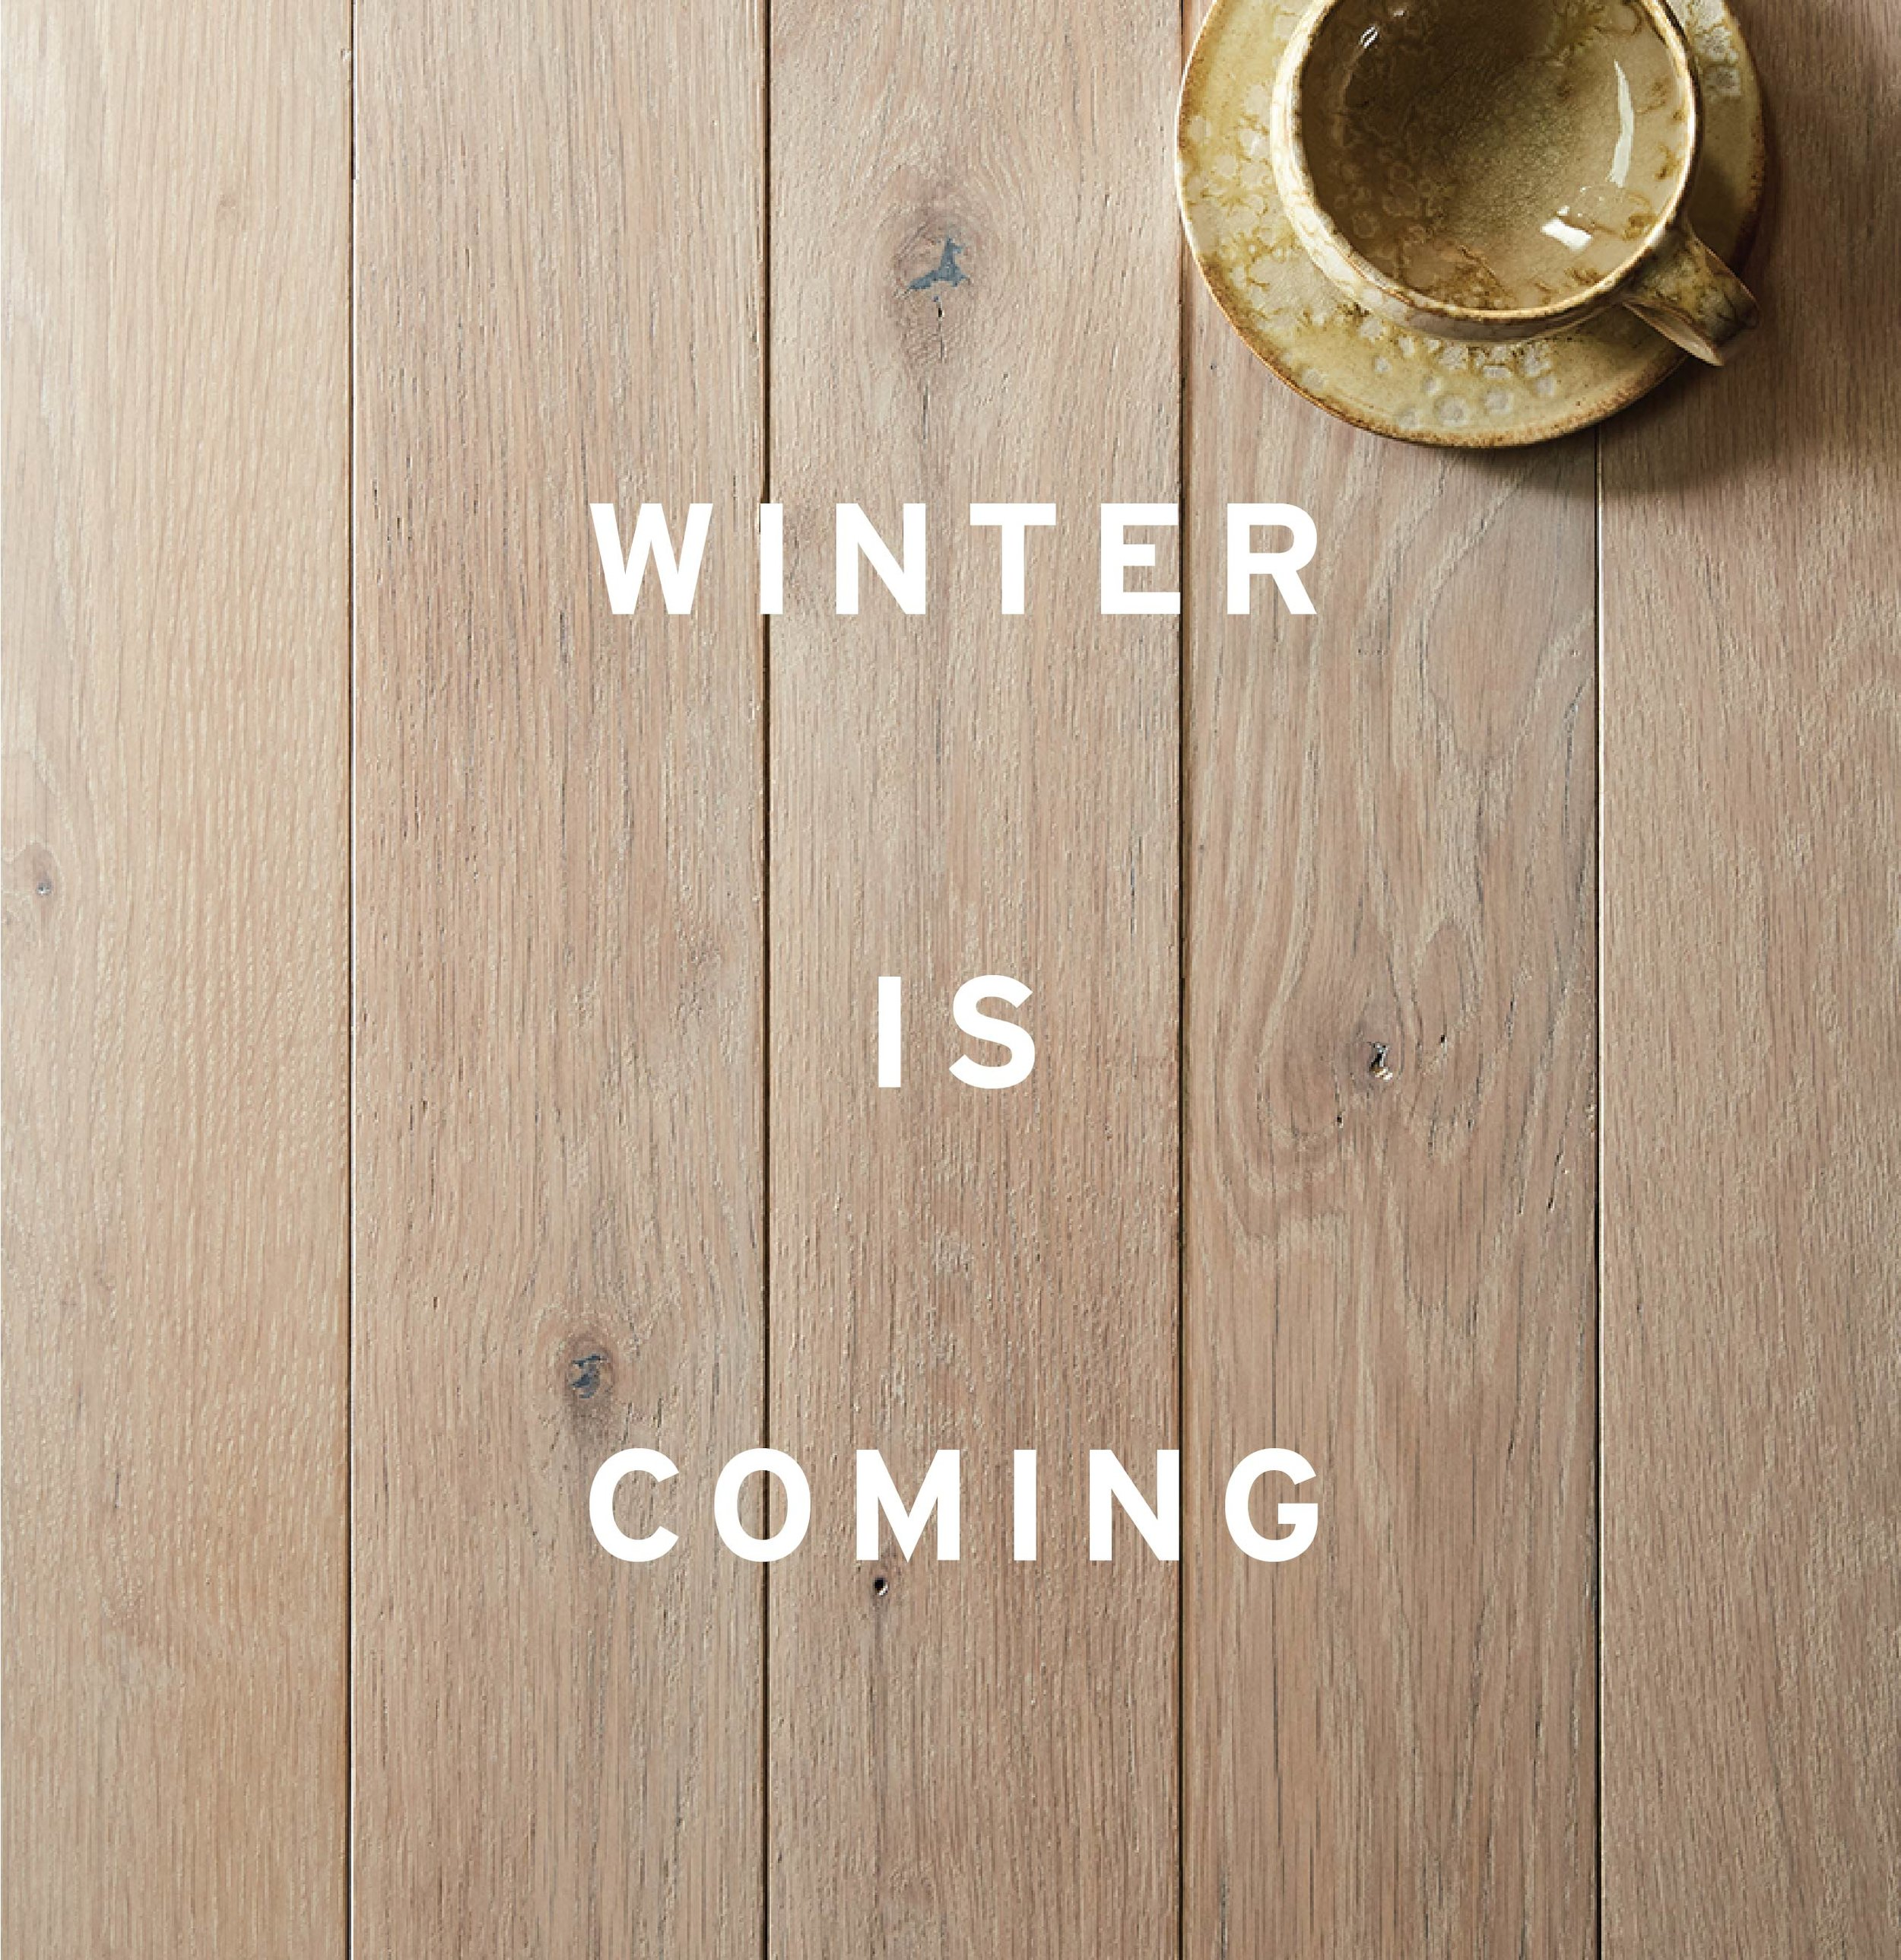 winter.is.coming.blast-02.jpg